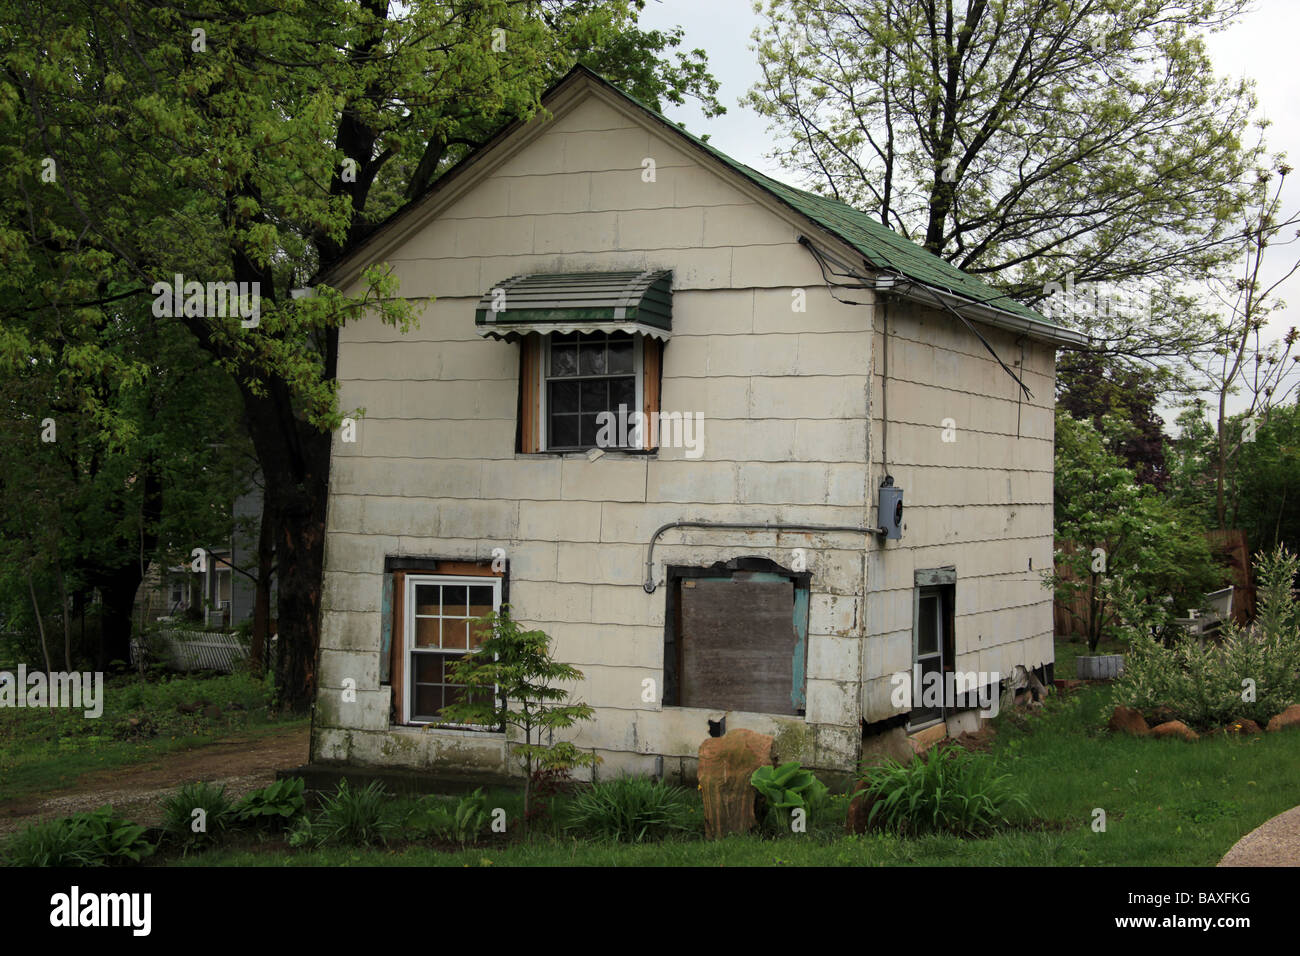 Dilapidated house in serious state of disrepair. - Stock Image